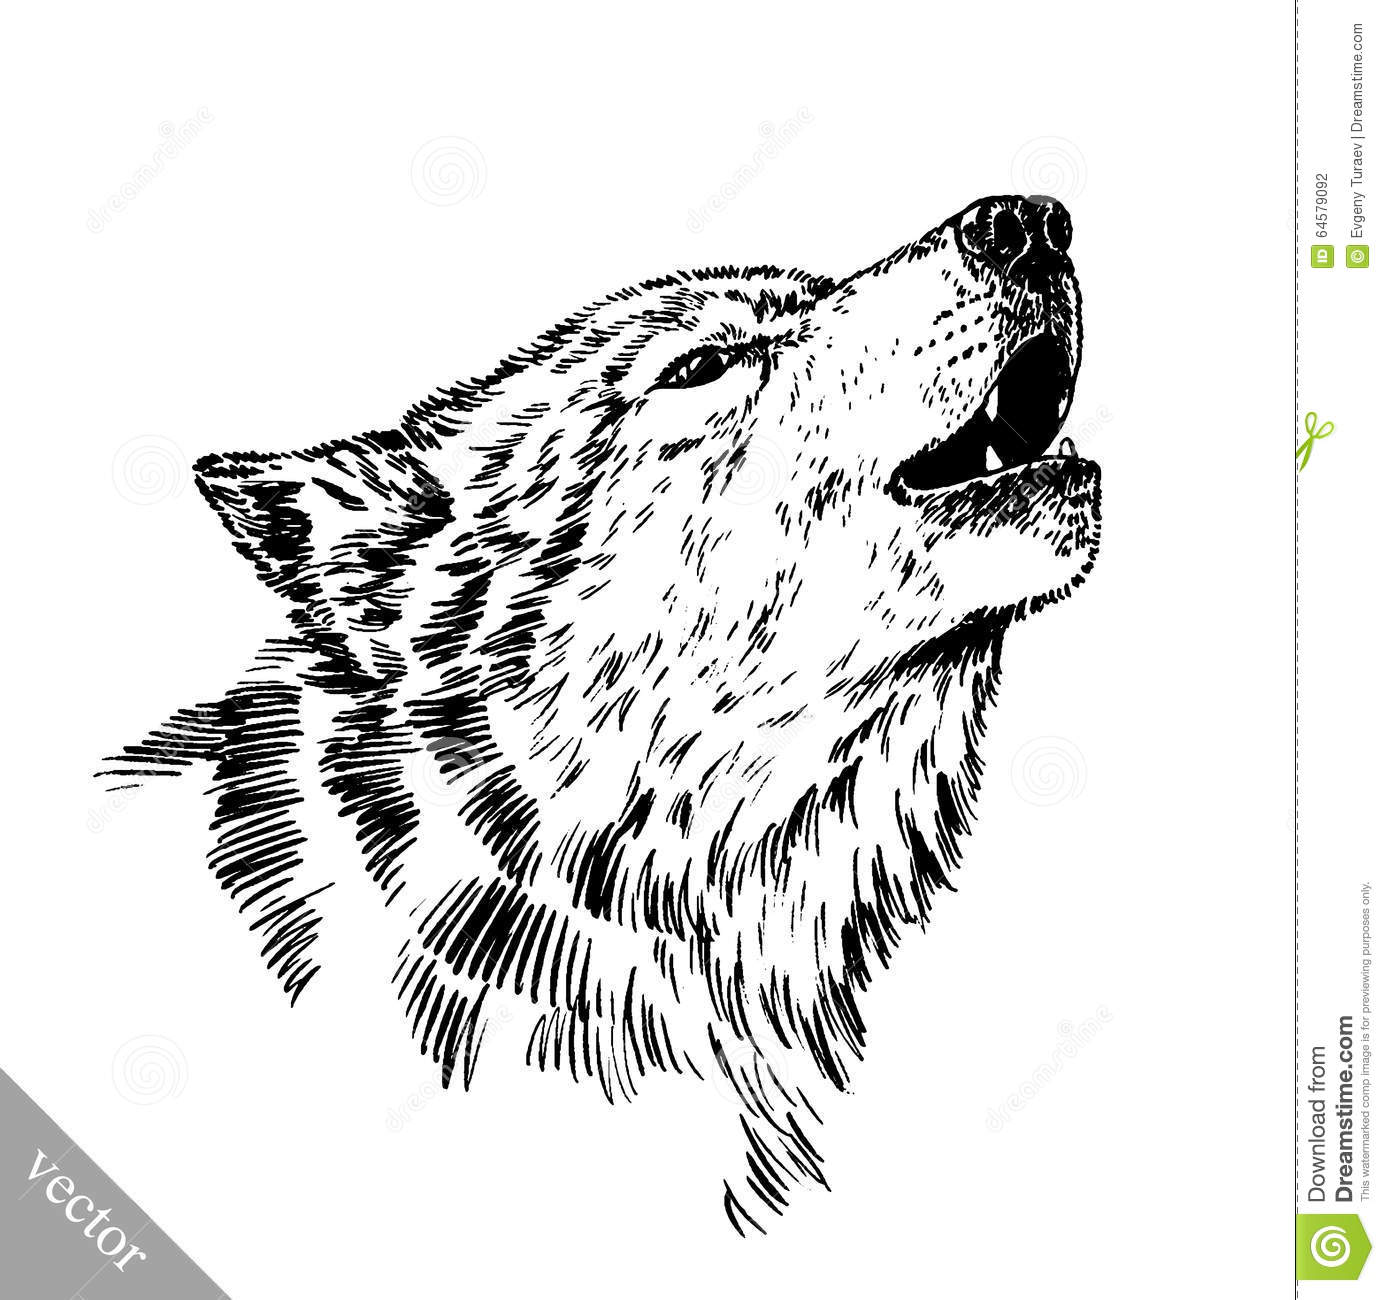 Jpg To Line Art : Black and white engrave wolf stock vector illustration